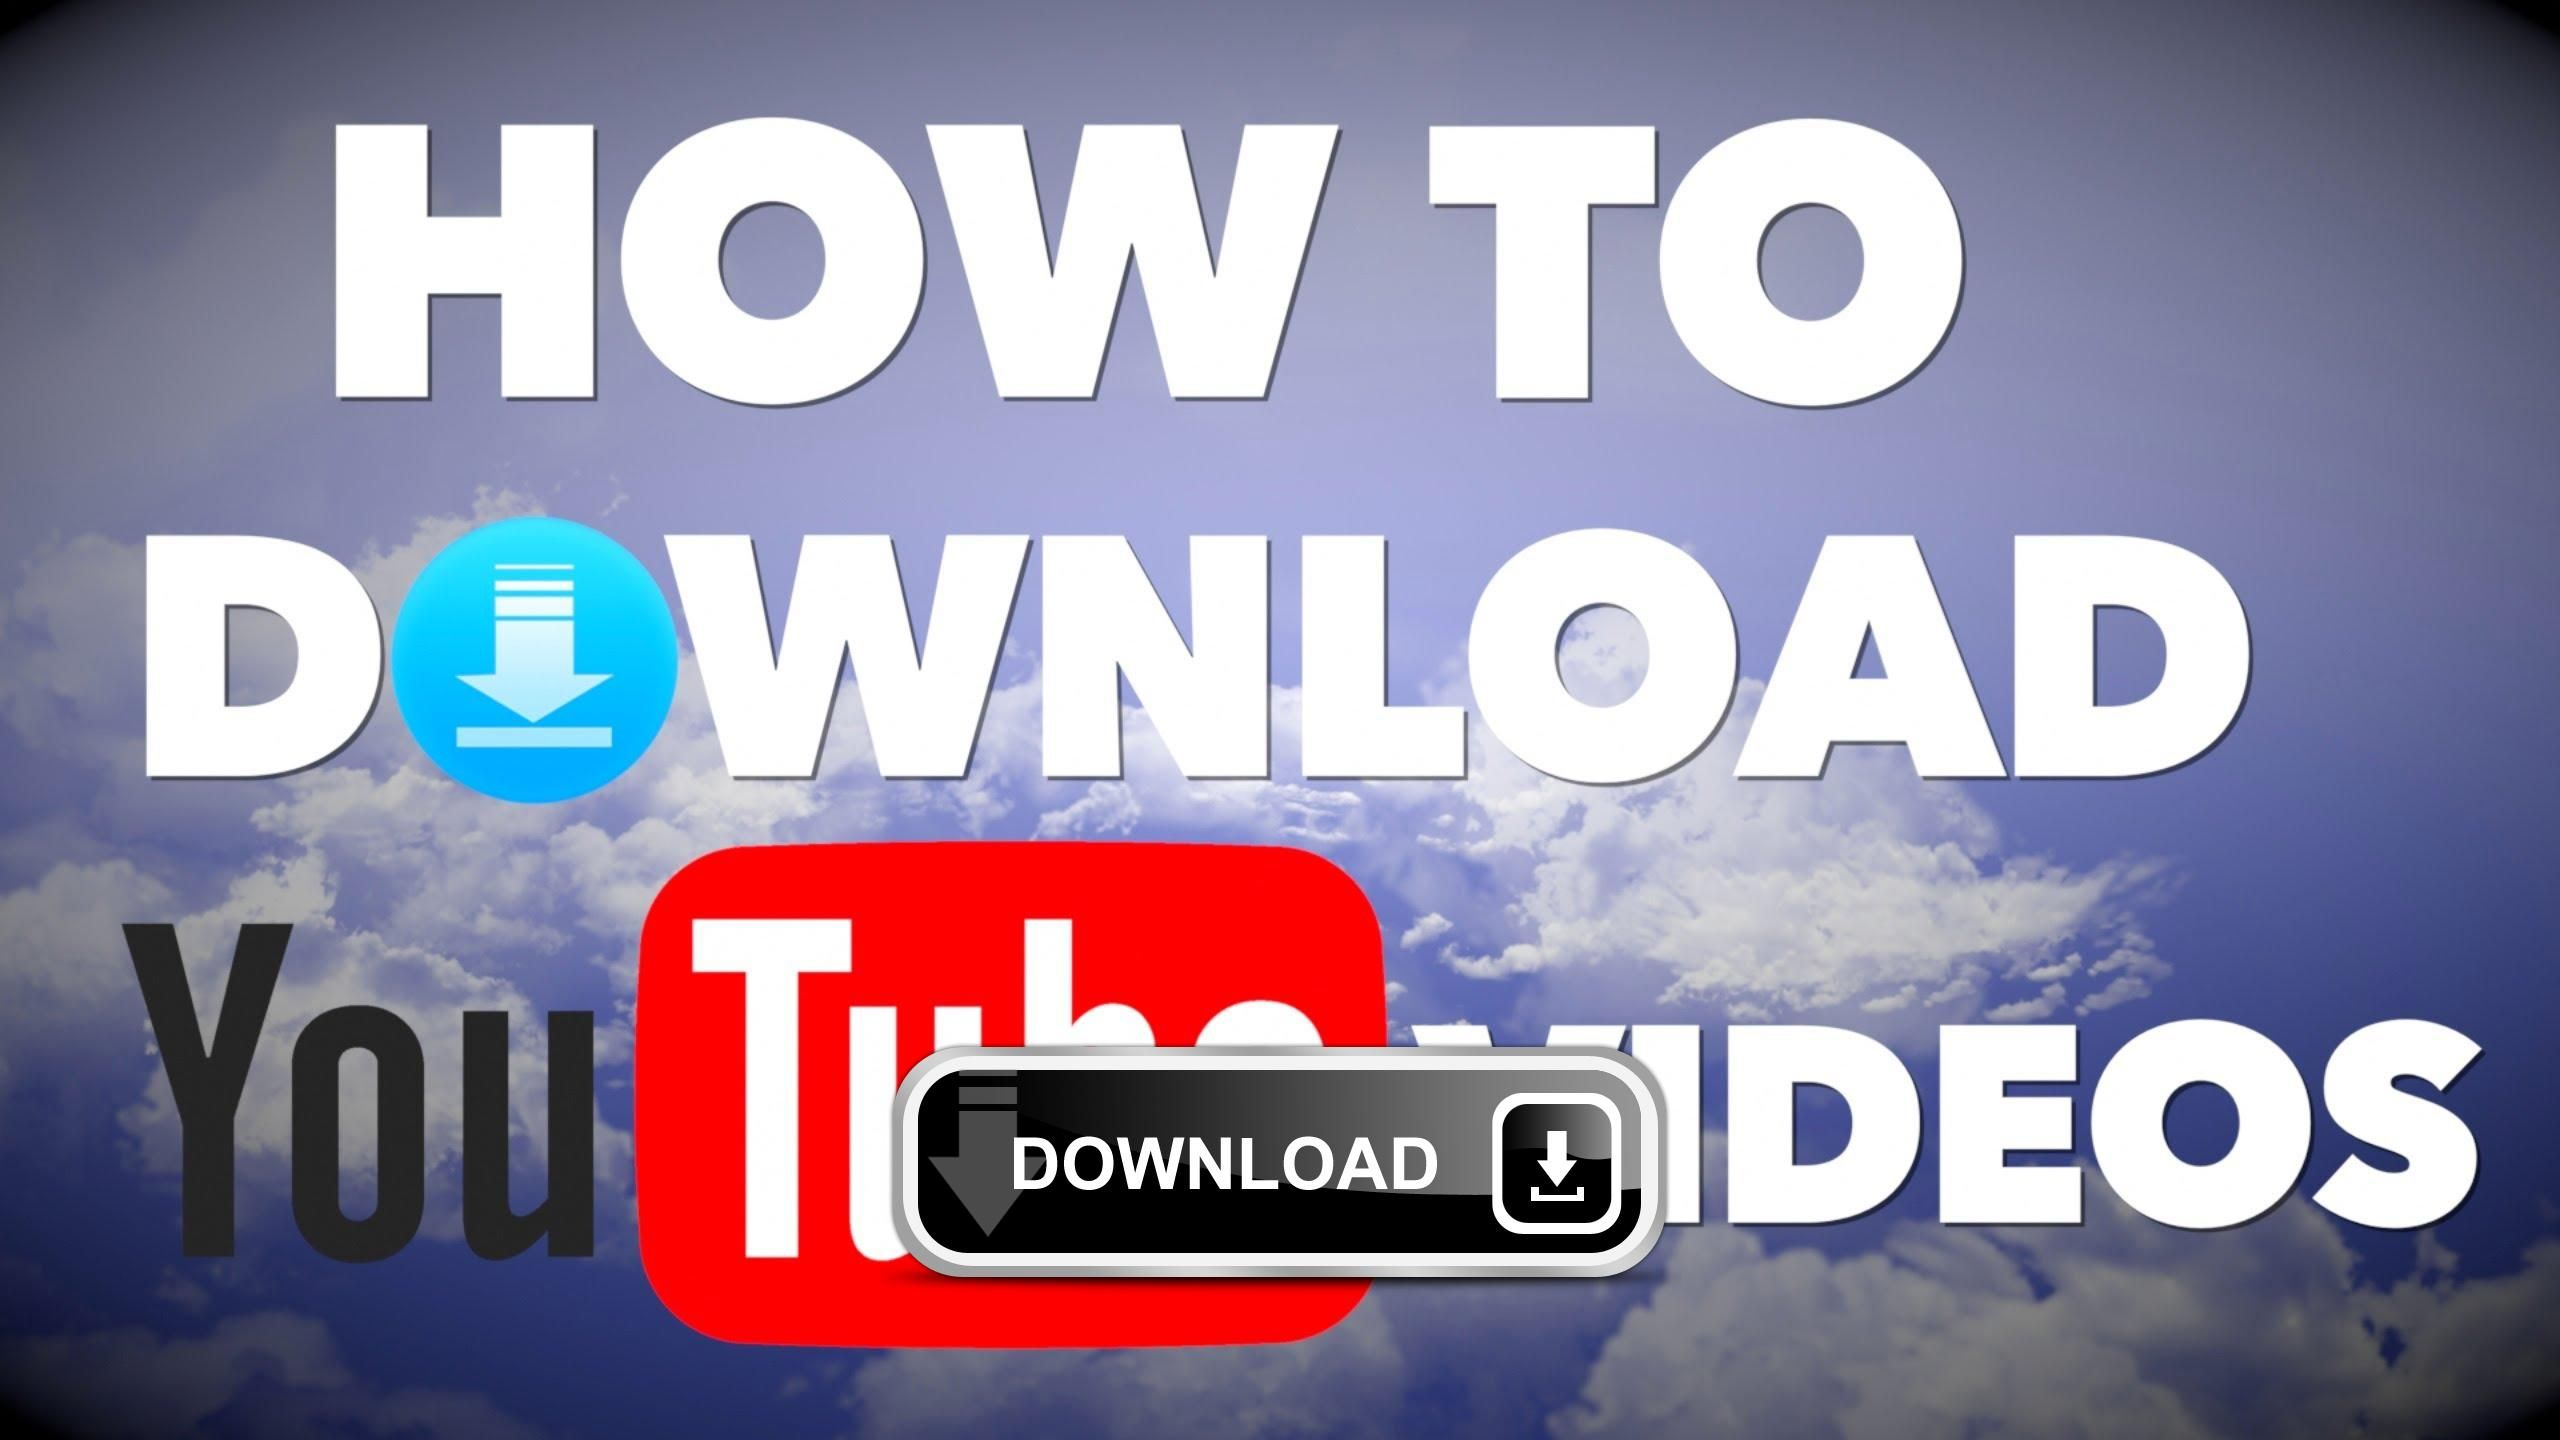 Download how to download youtube videos fast and easy without any download how to download youtube videos fast and easy without any software http ccuart Image collections